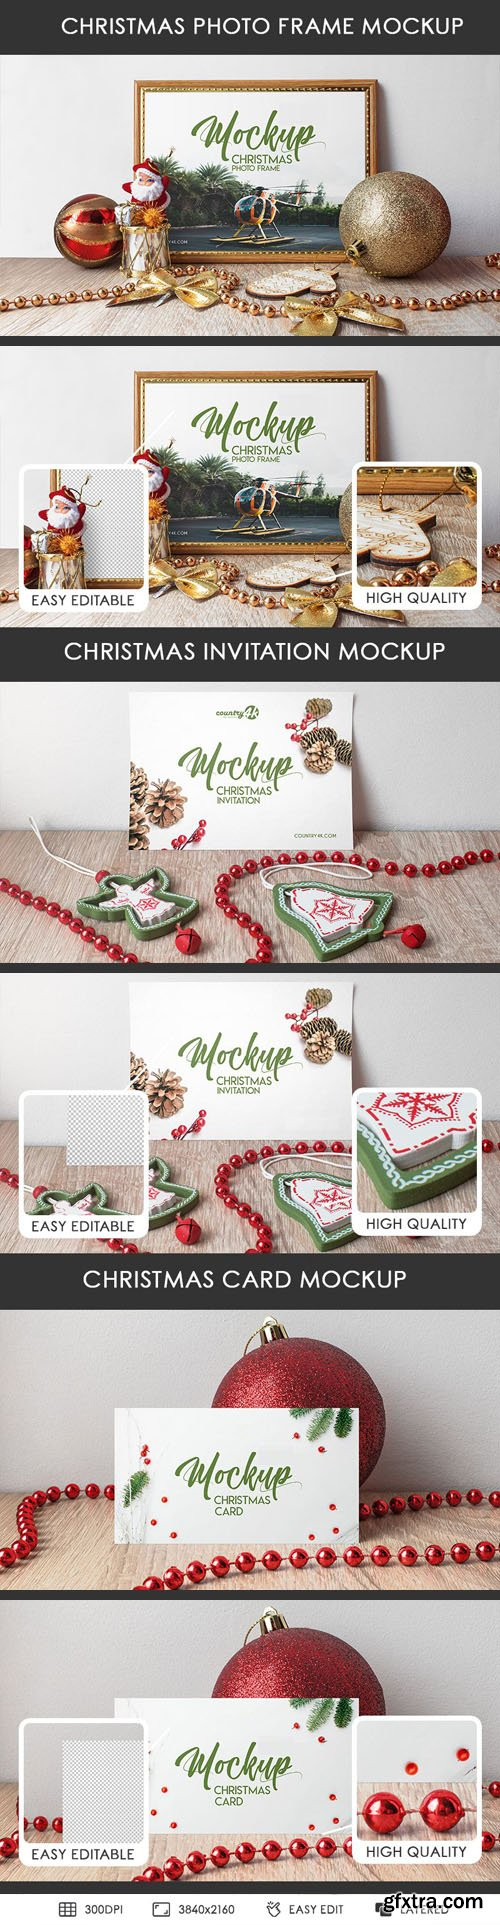 Christmas Invitation Cards & Photo Frame PSD MockUps in 4k